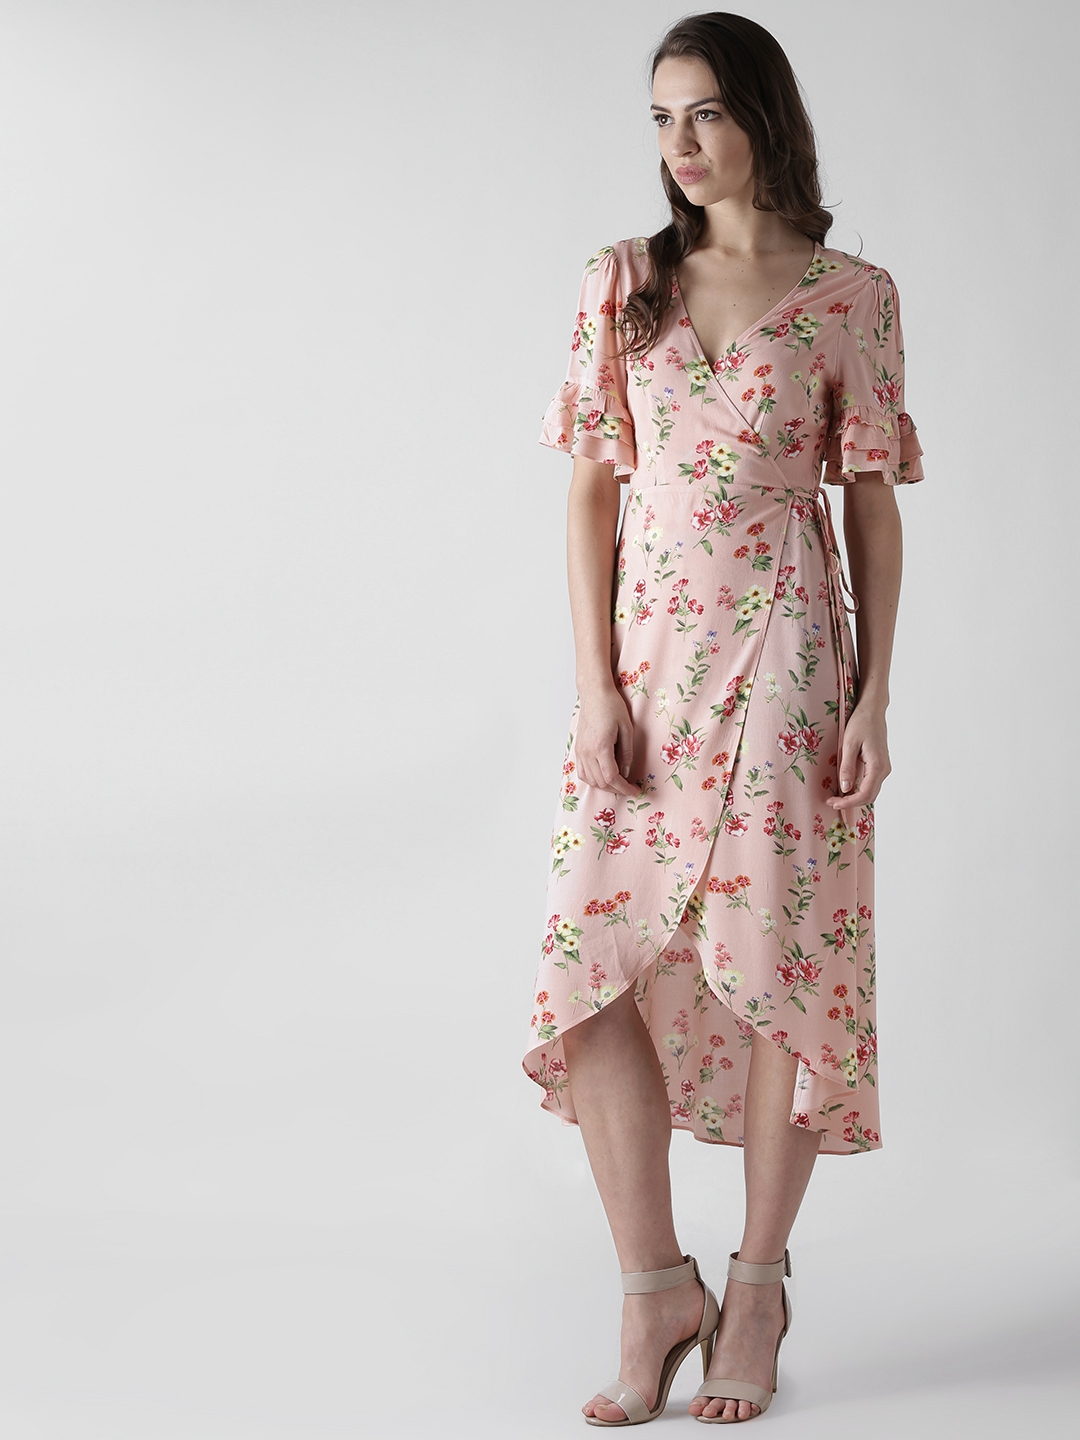 df2fab73dd85 Buy FOREVER 21 Women Pink Floral Print Wrap Dress - Dresses for ...